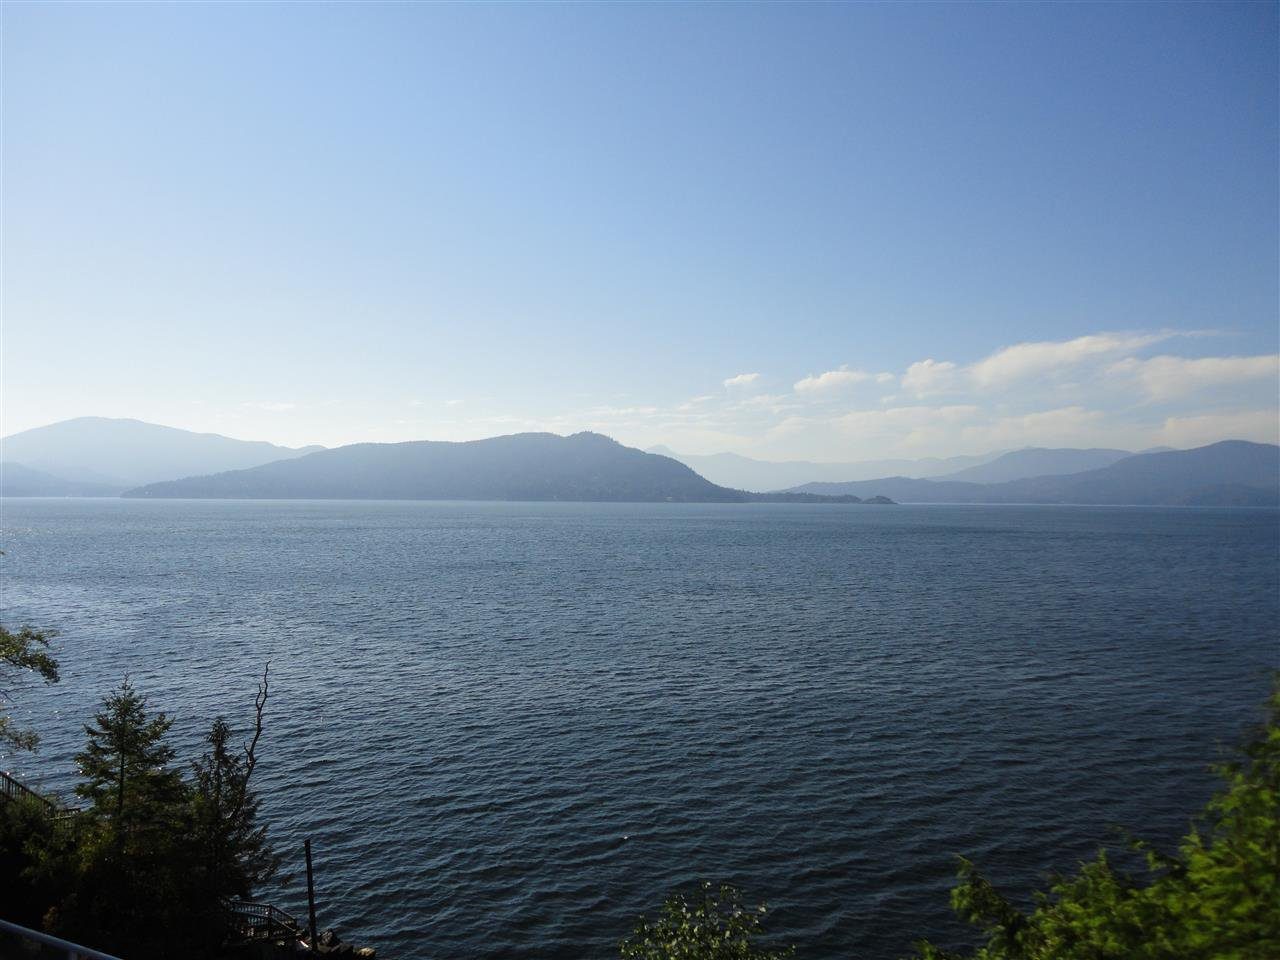 Photo 20: Photos: 8255 PASCO ROAD in West Vancouver: Howe Sound House for sale : MLS®# R2351856